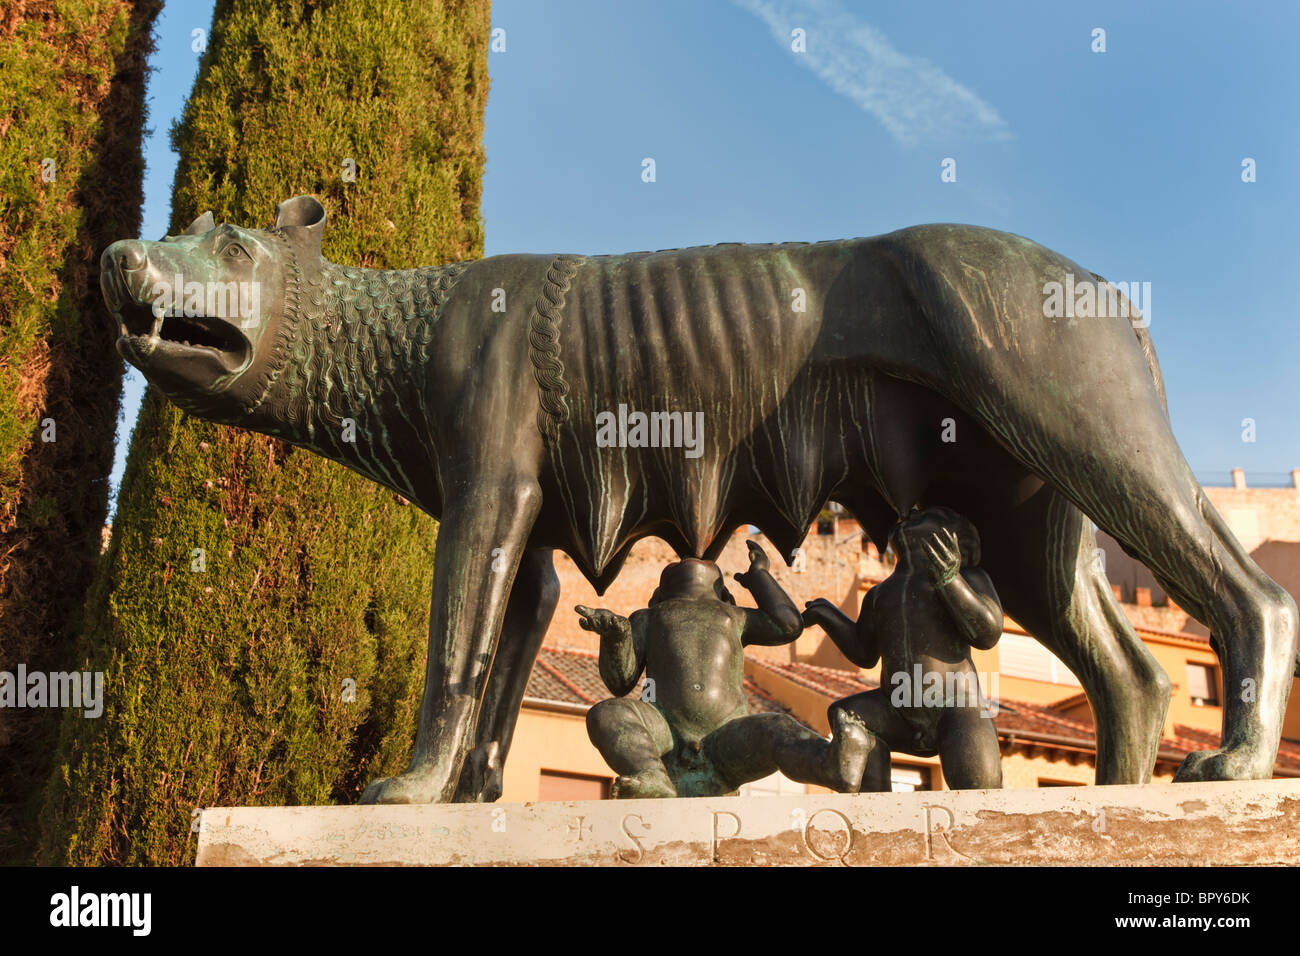 Segovia, Segovia Province, Spain. The she wolf suckling Romulus and Remus. - Stock Image